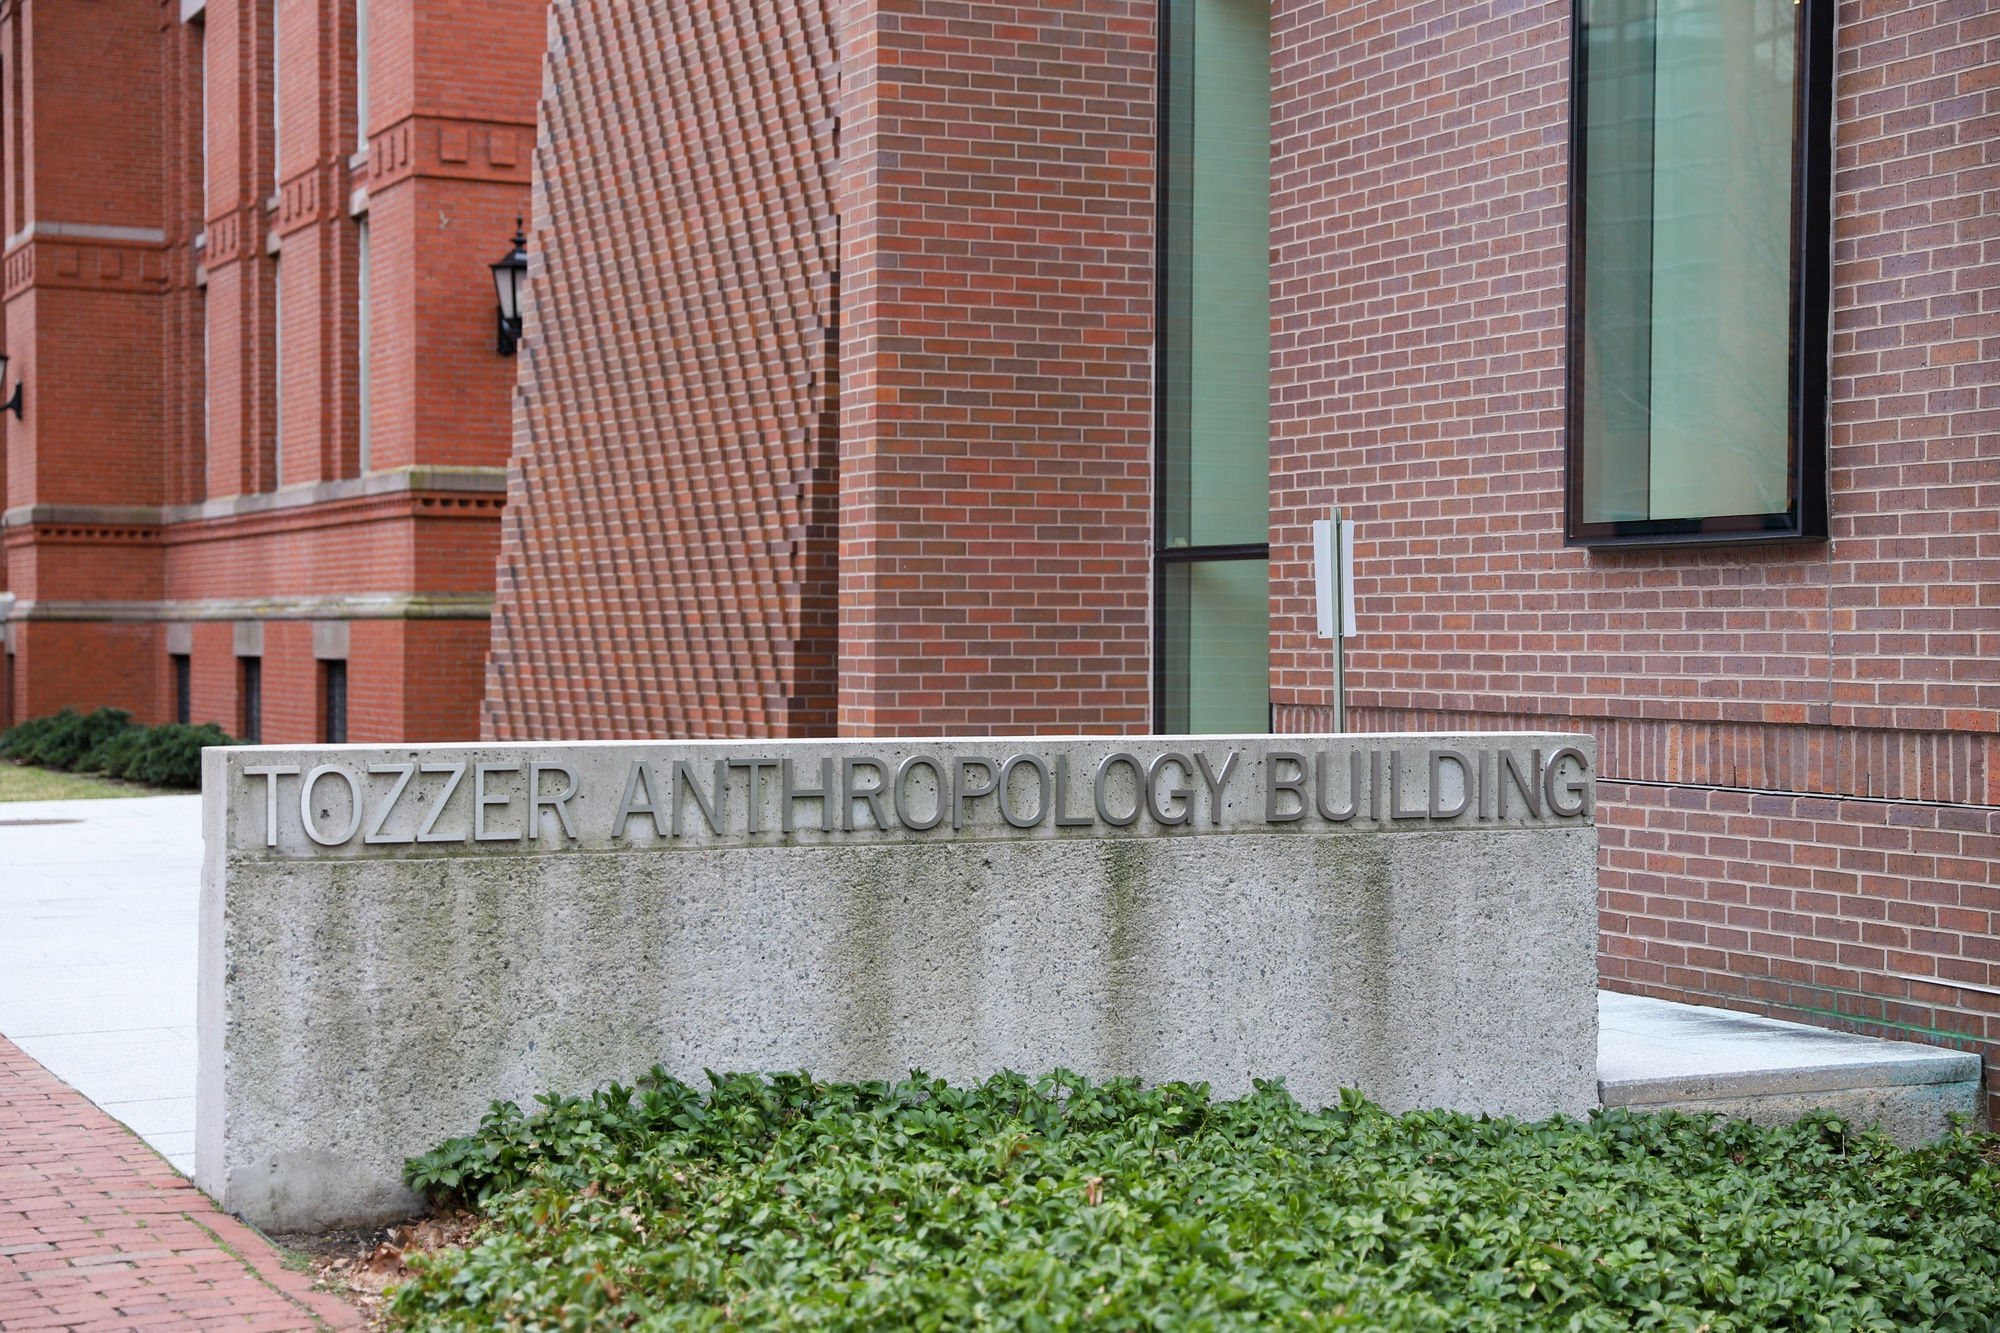 The Tozzer Anthropology Building and Peabody Museum house offices for Harvard's Anthropology department.